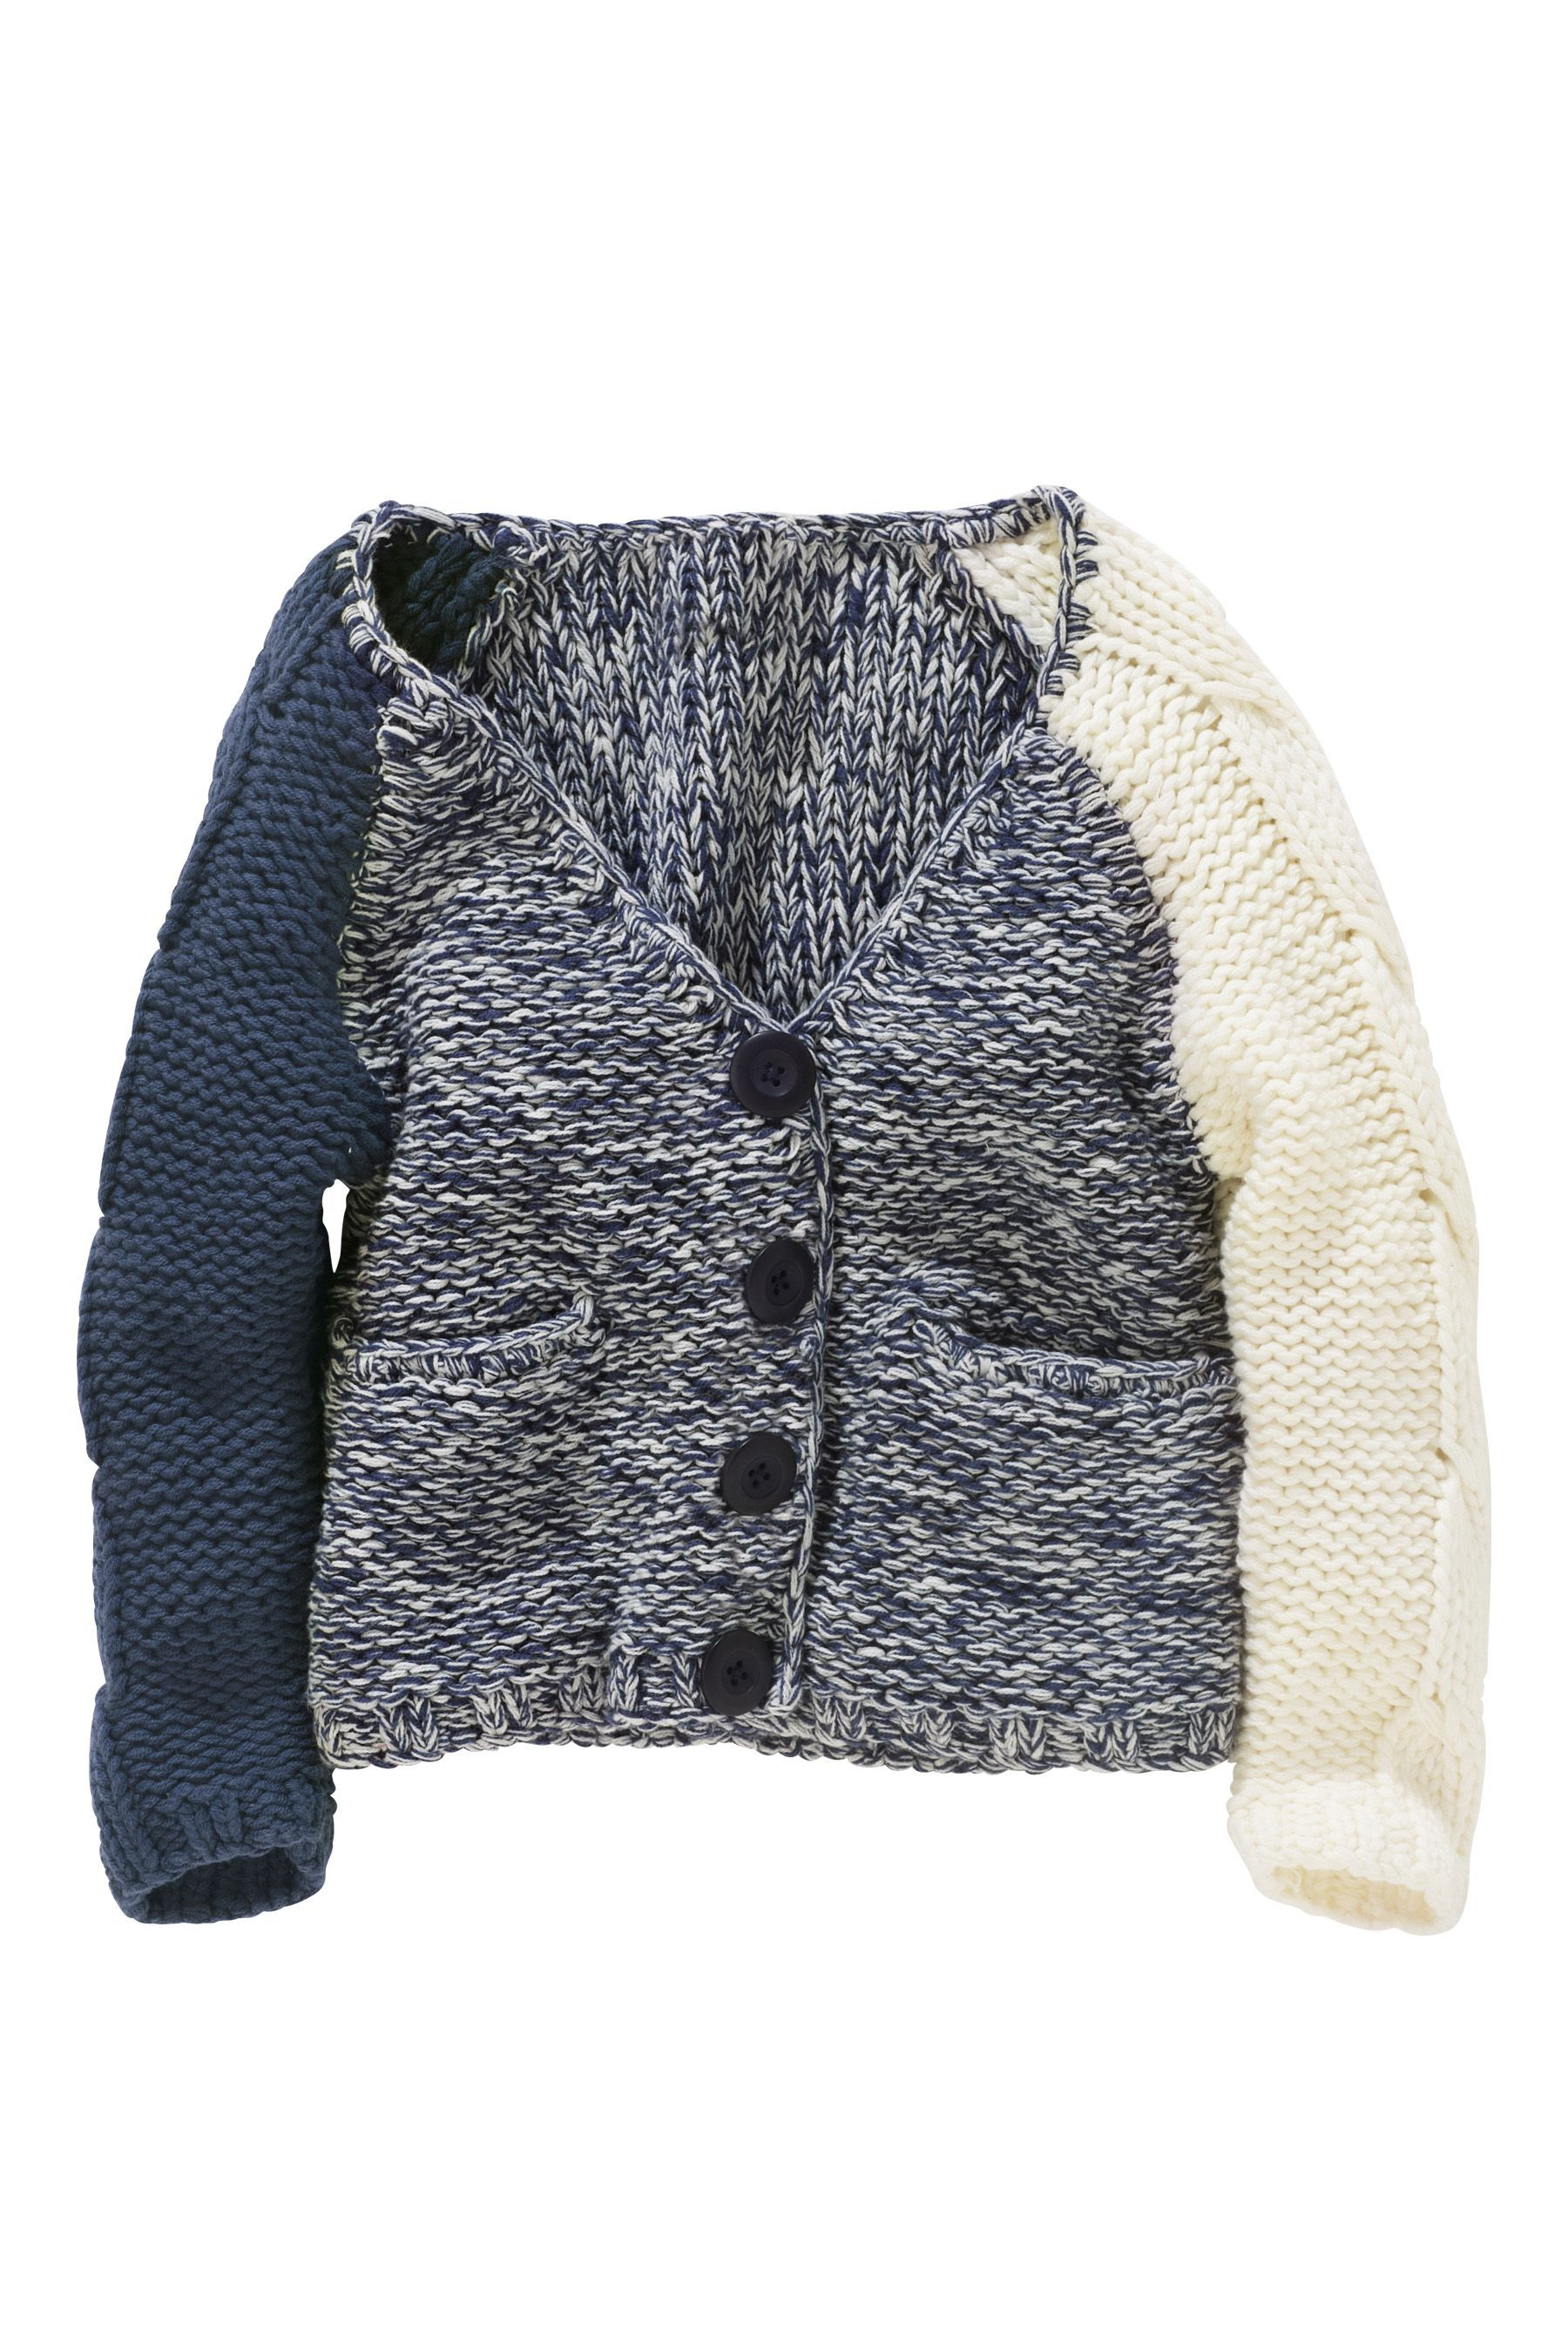 Buy Colour Block Chunky Cardigan from the Next | kids | Pinterest ...